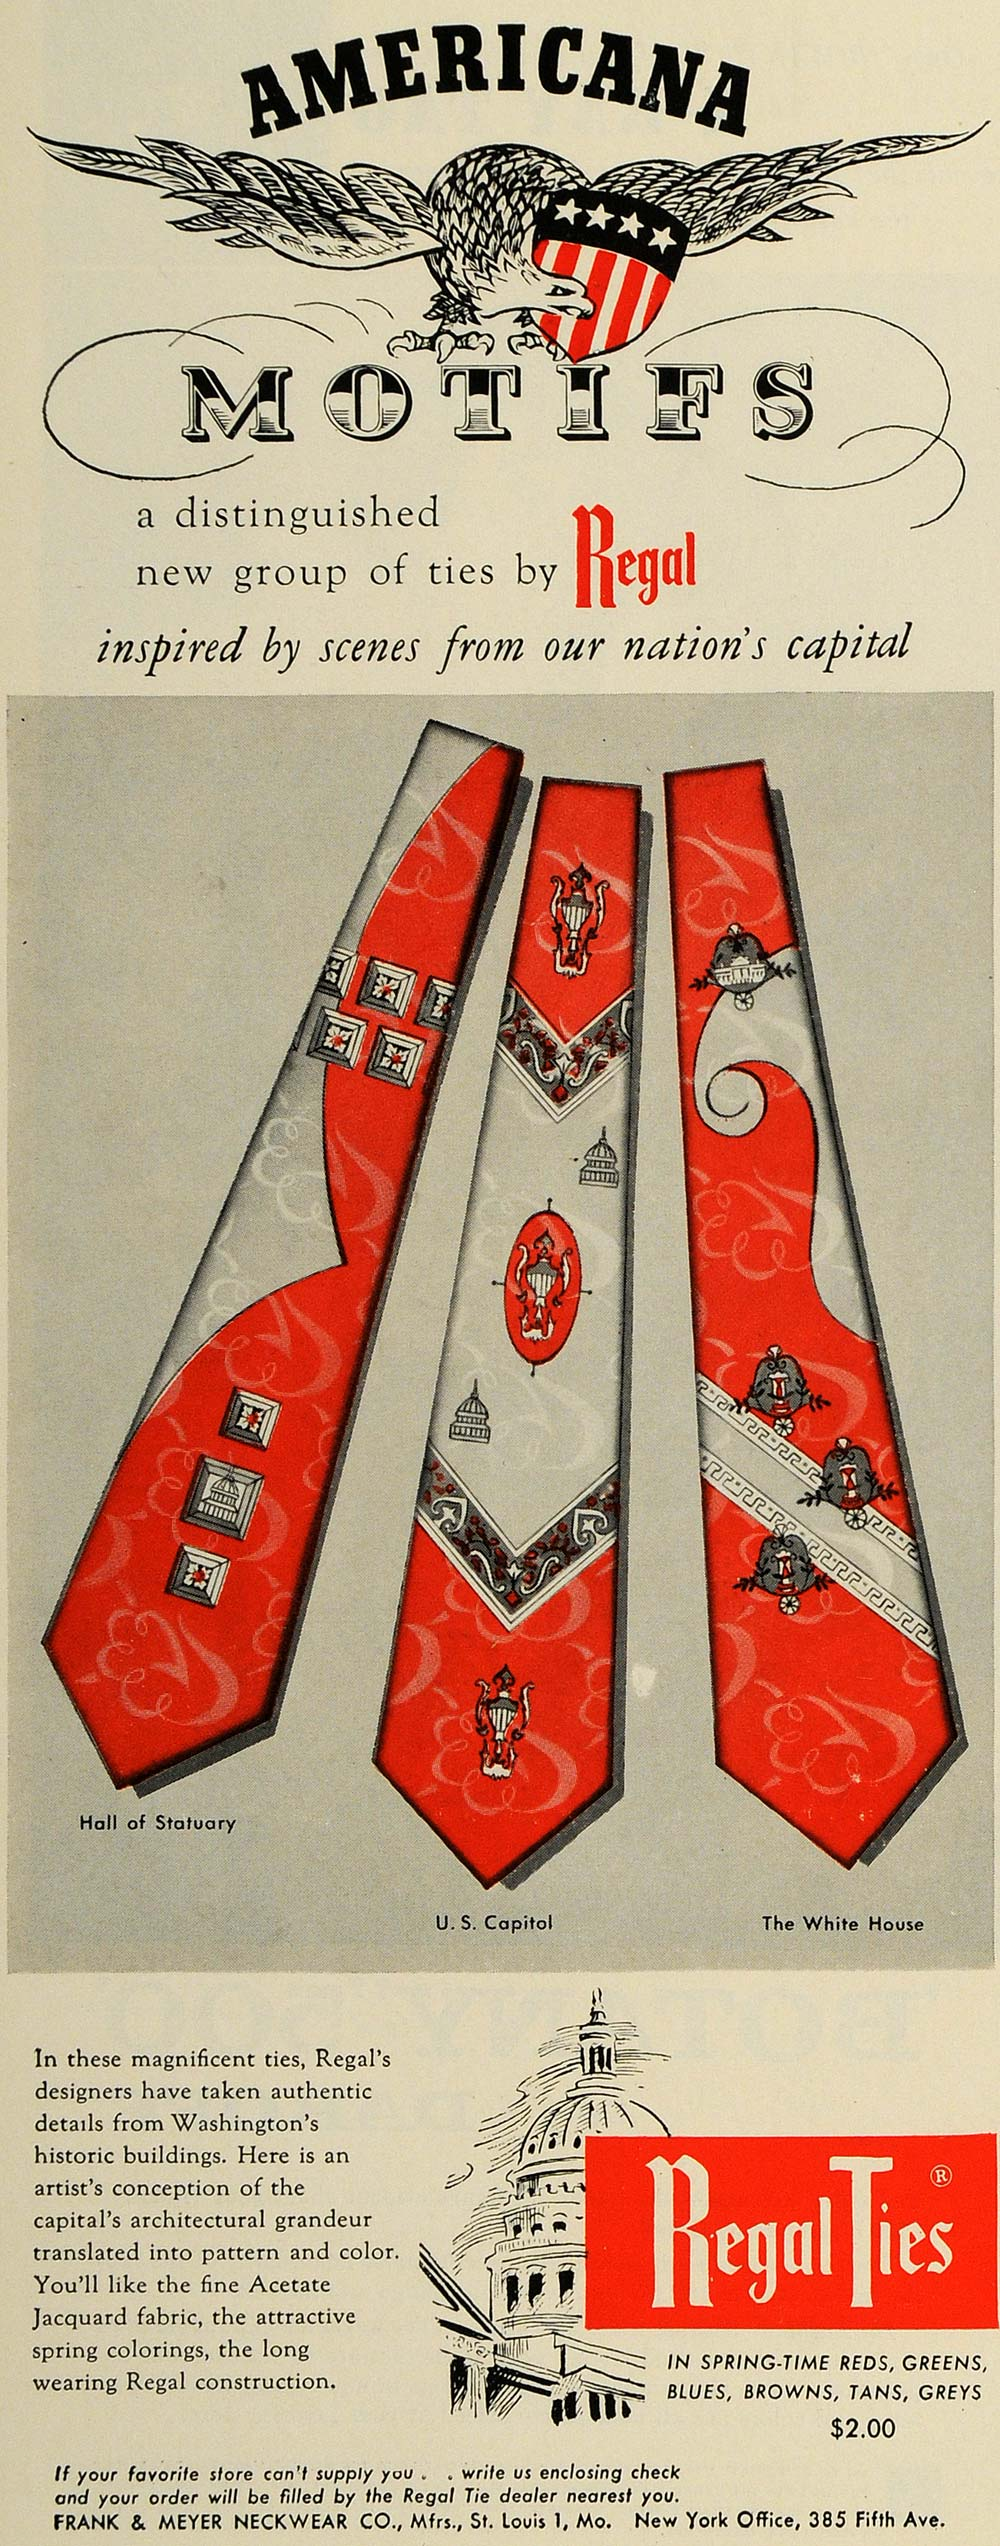 1954 Ad Frank & Meyer Neckwear Co. Regal Ties Clothes - ORIGINAL ESQ4